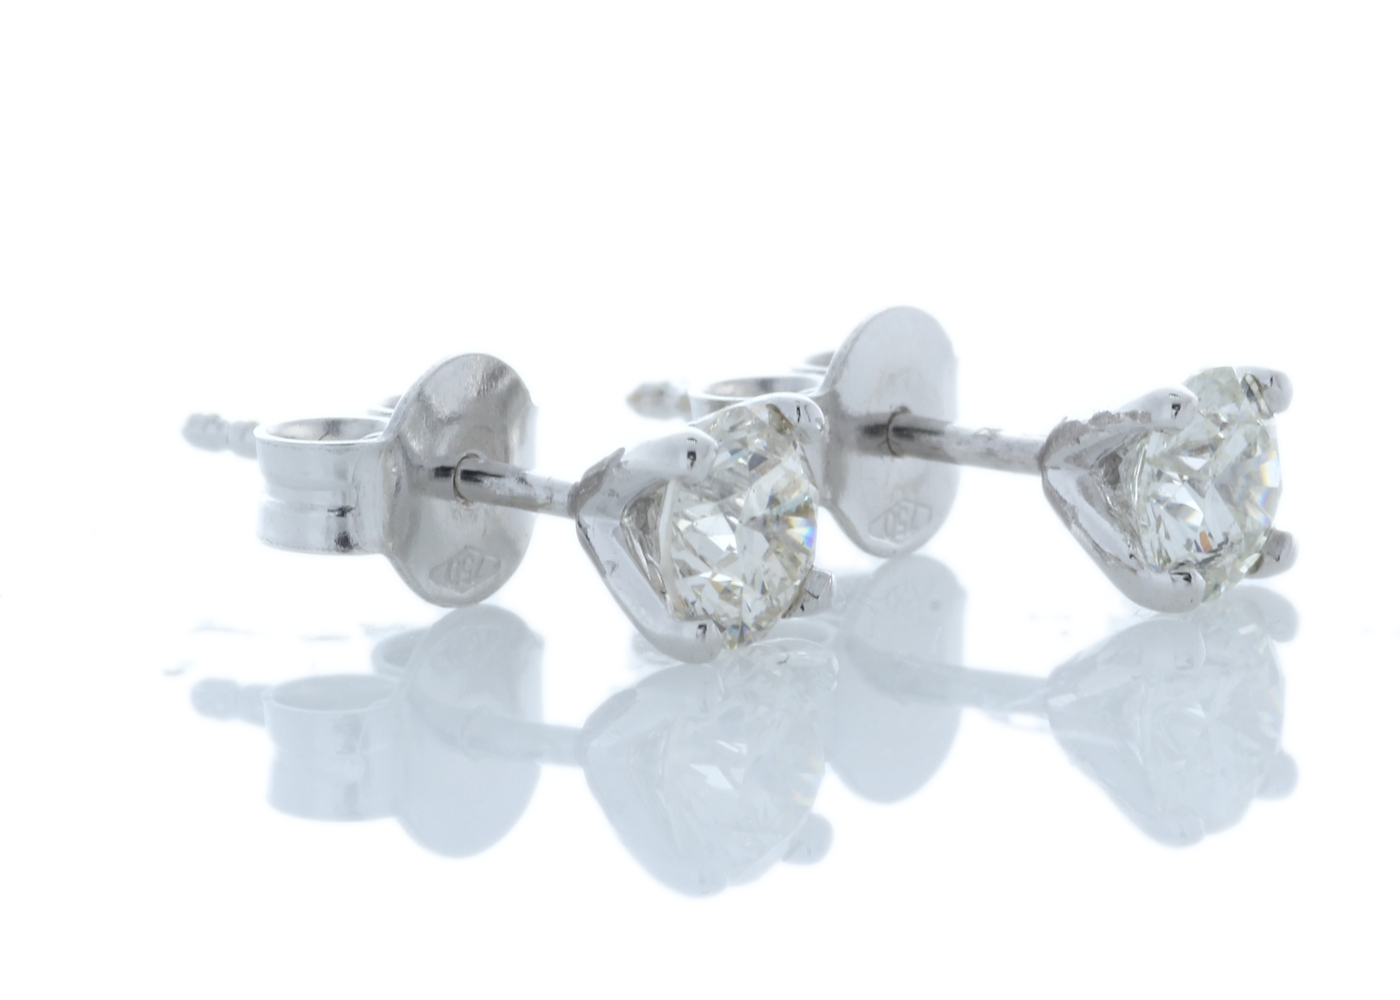 18k White Gold Wire Set Diamond Earrings 0.80 Carats - Image 2 of 4